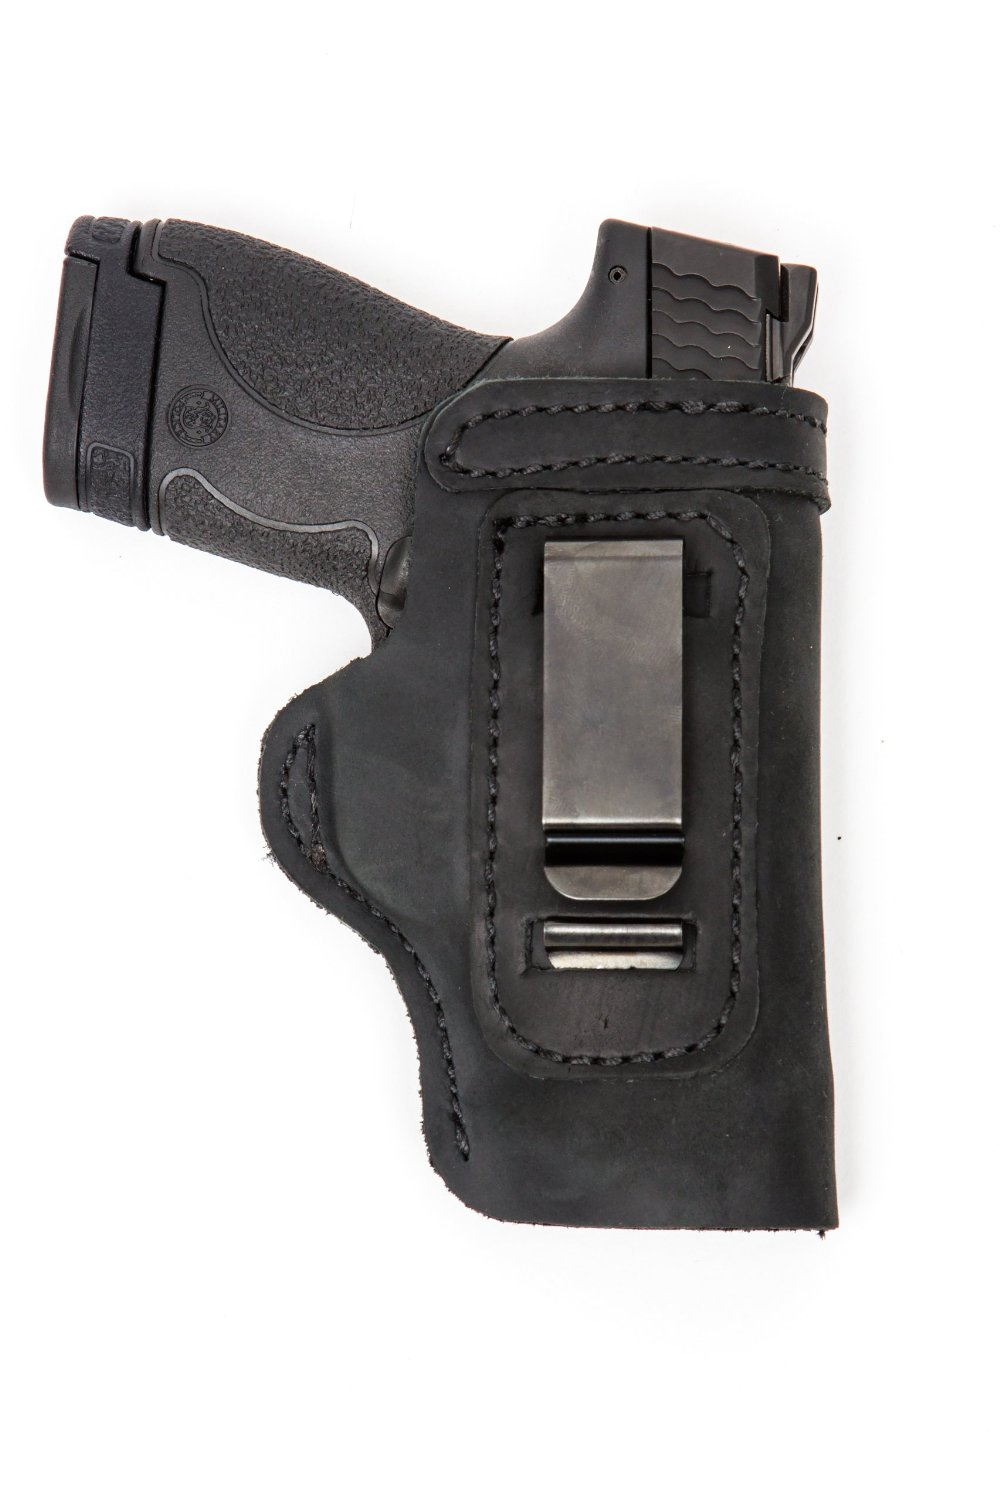 best concealed weapon holster